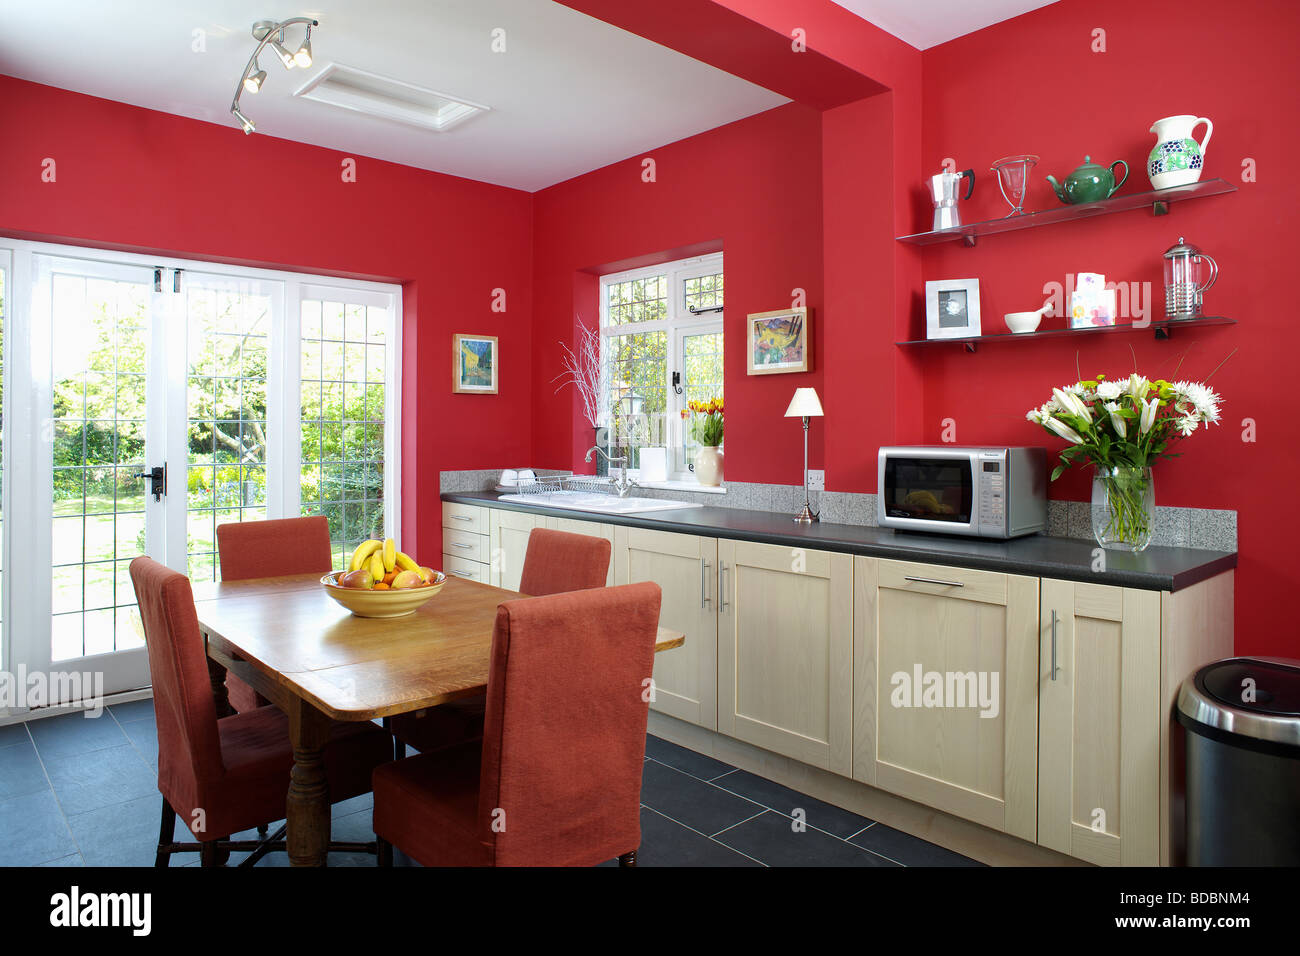 wood table and red upholstered chairs in red kitchen dining room extension BDBNM4